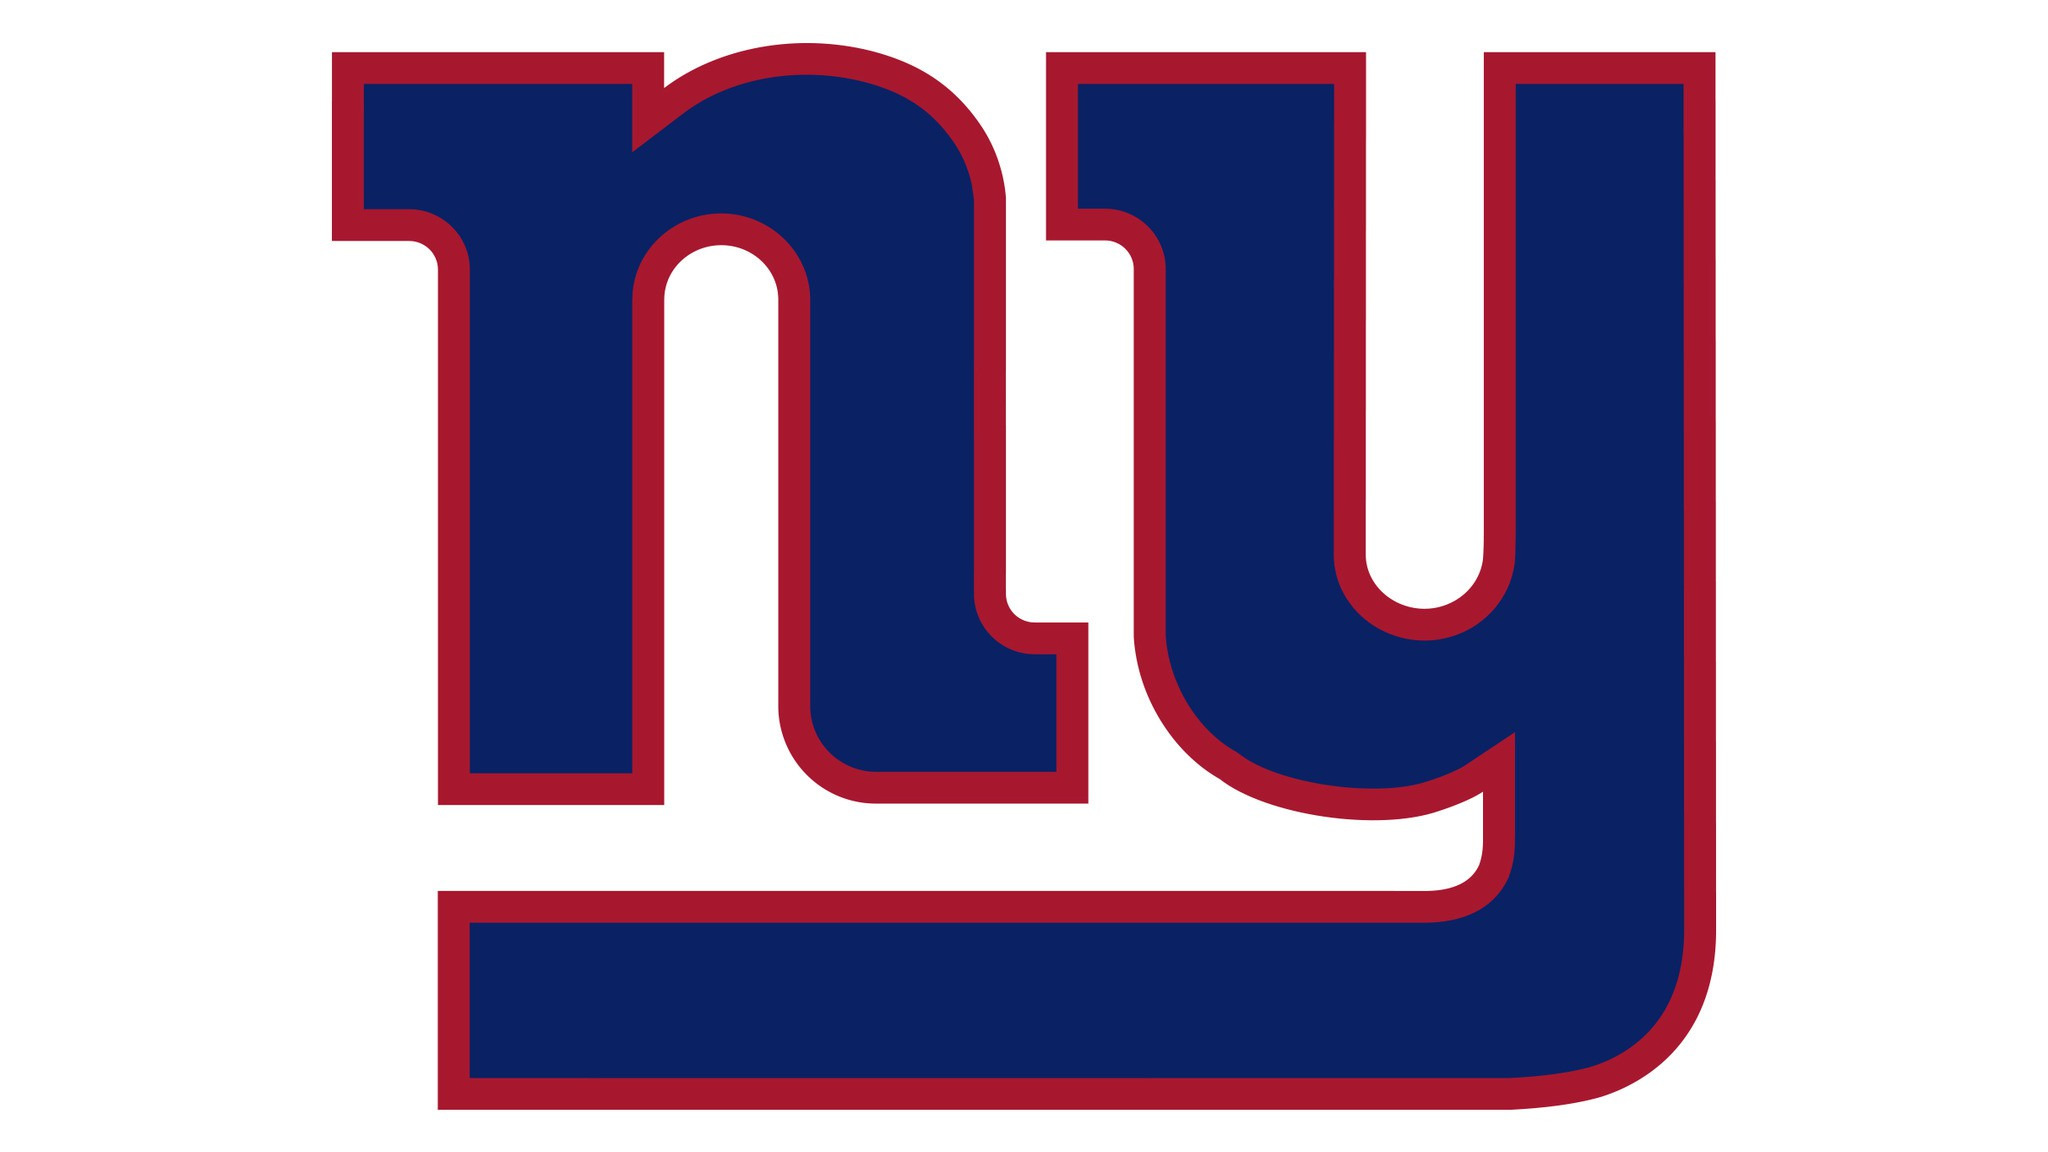 2048x1152 New York Giants Vs New England Patriots Clipart